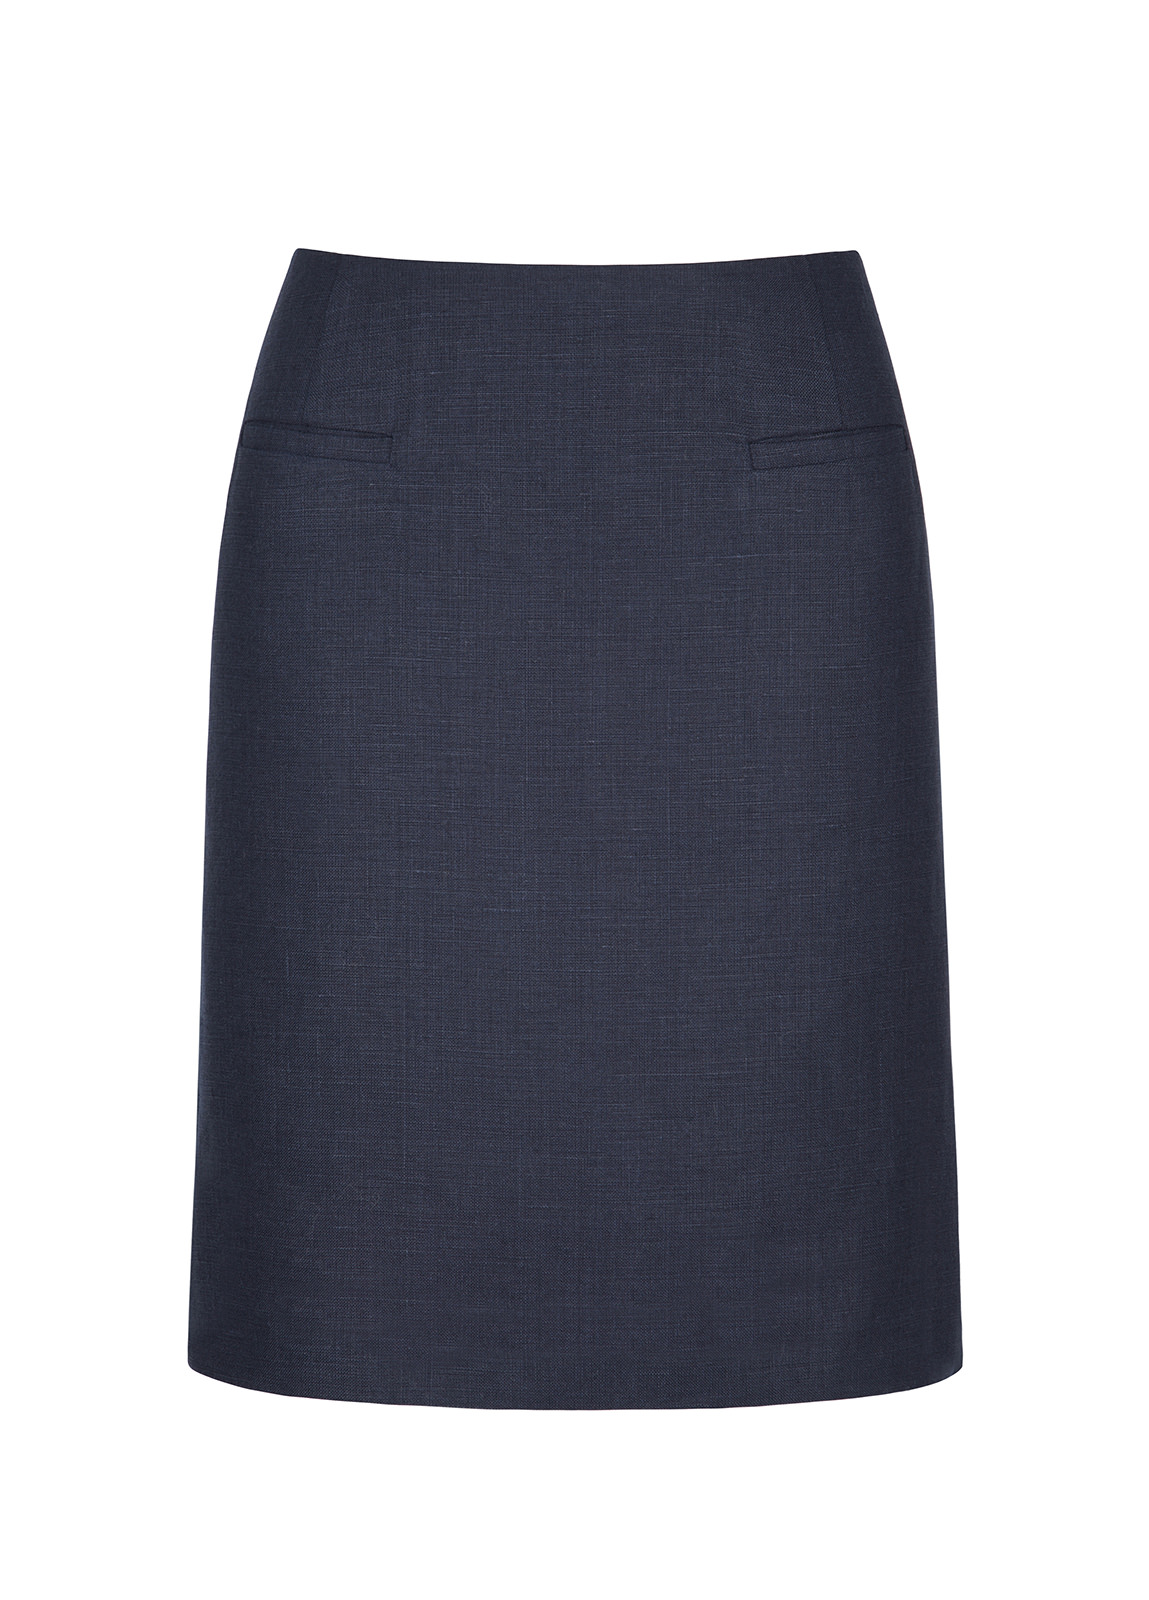 Sunflower Linen Ladies Skirt - Navy